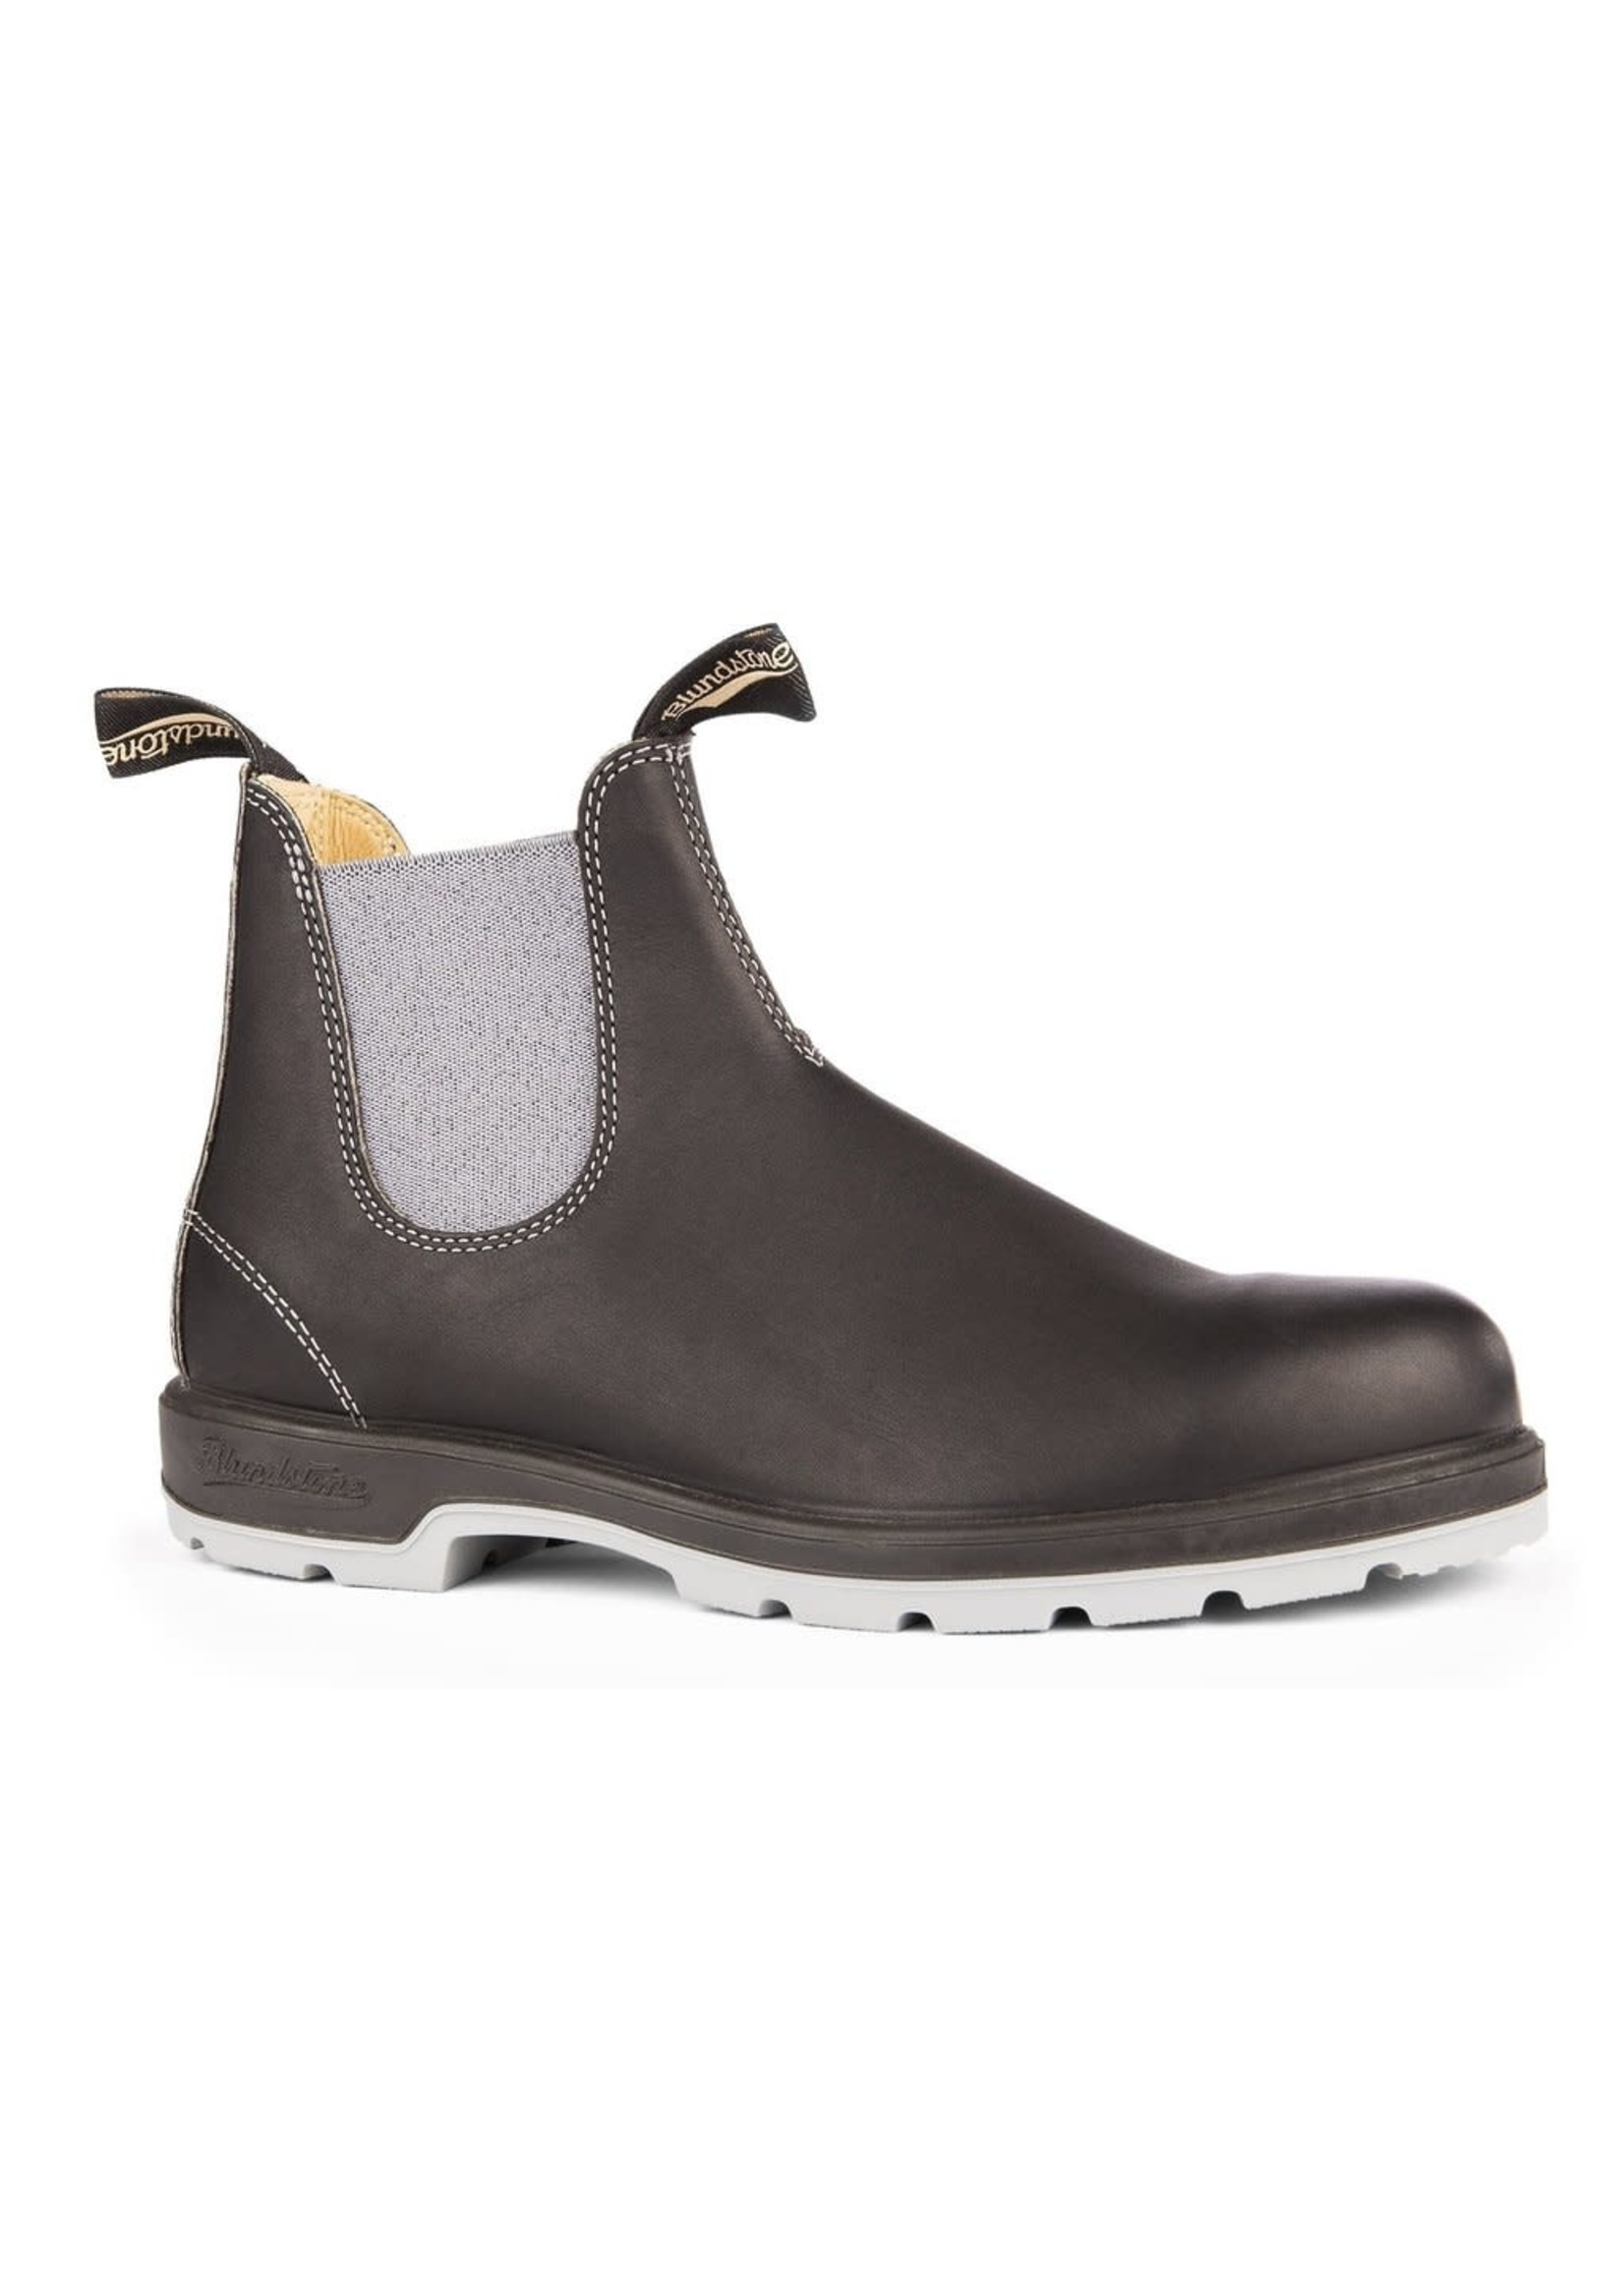 BLUNDSTONE D- BLUNDSTONE- 1452- CLASSIC- GREY WITH BLACK